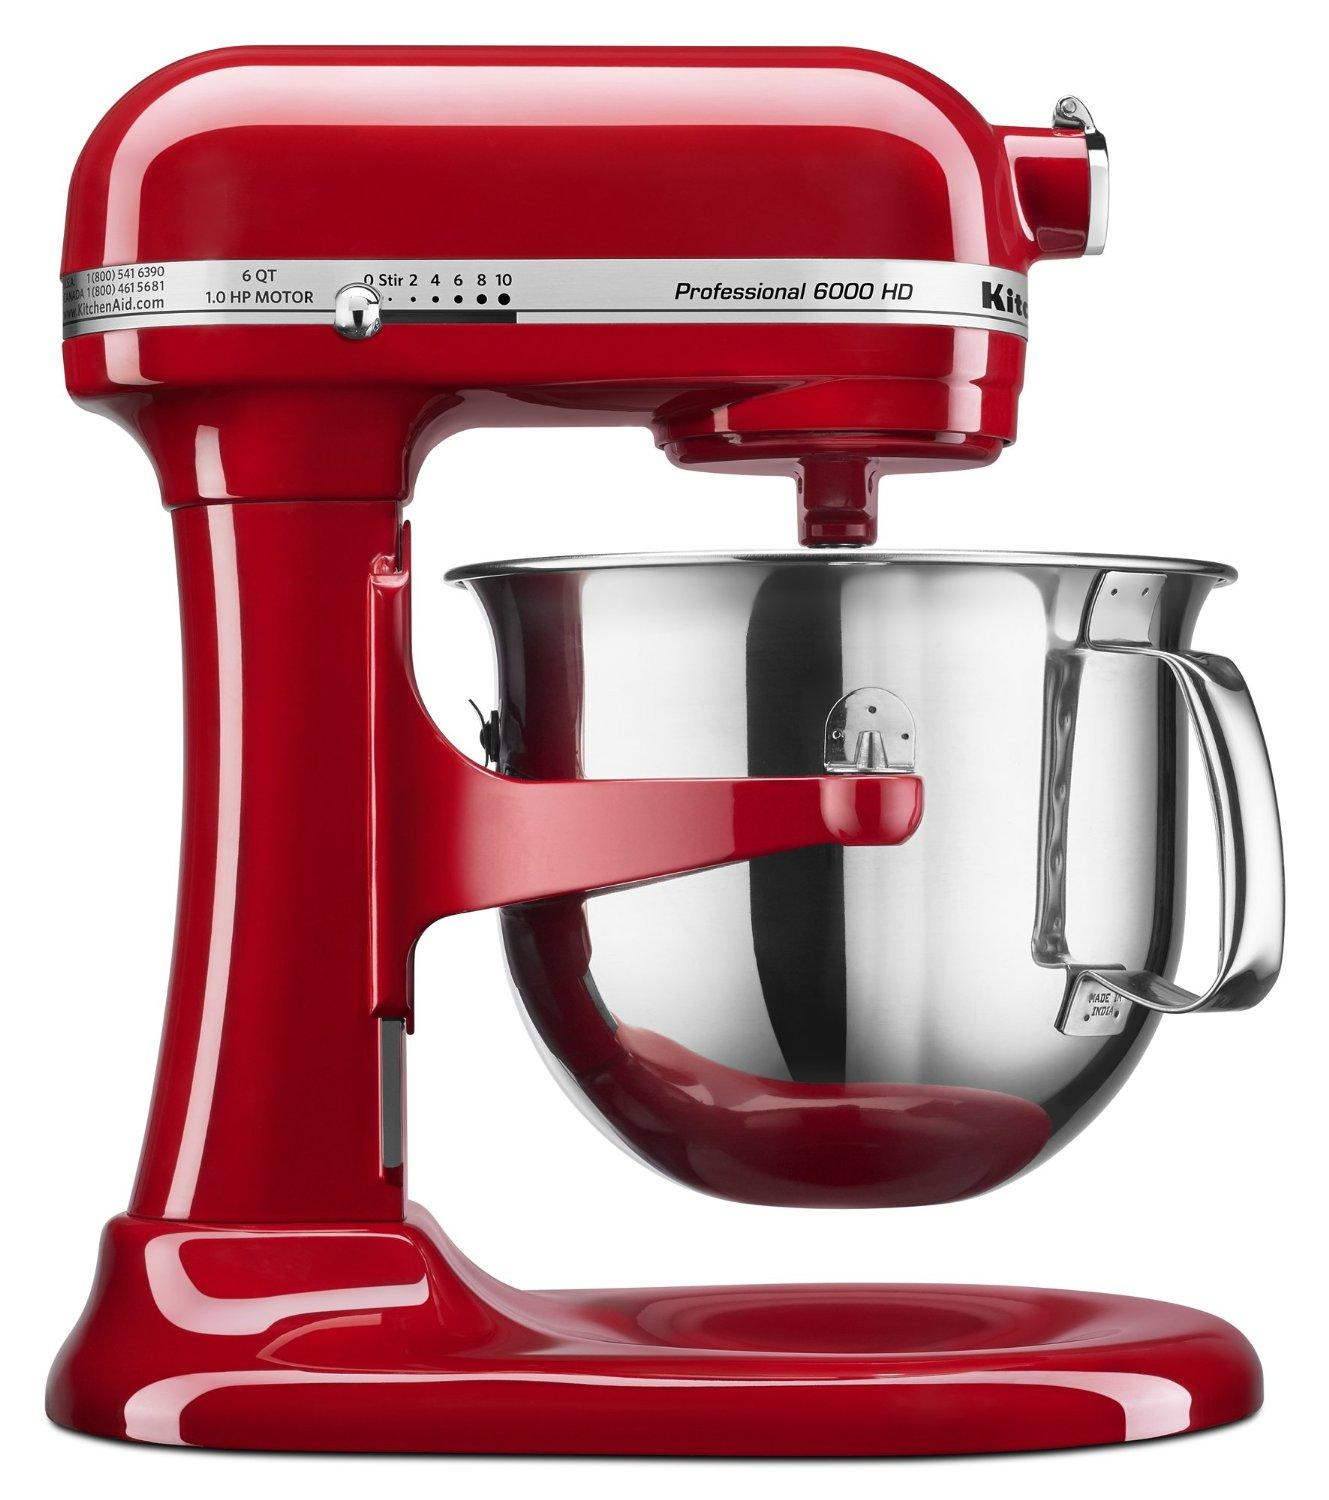 $249.99 KitchenAid KSM6573CER 6-Qt. Professional 6000 HD Bowl-Lift Stand Mixer